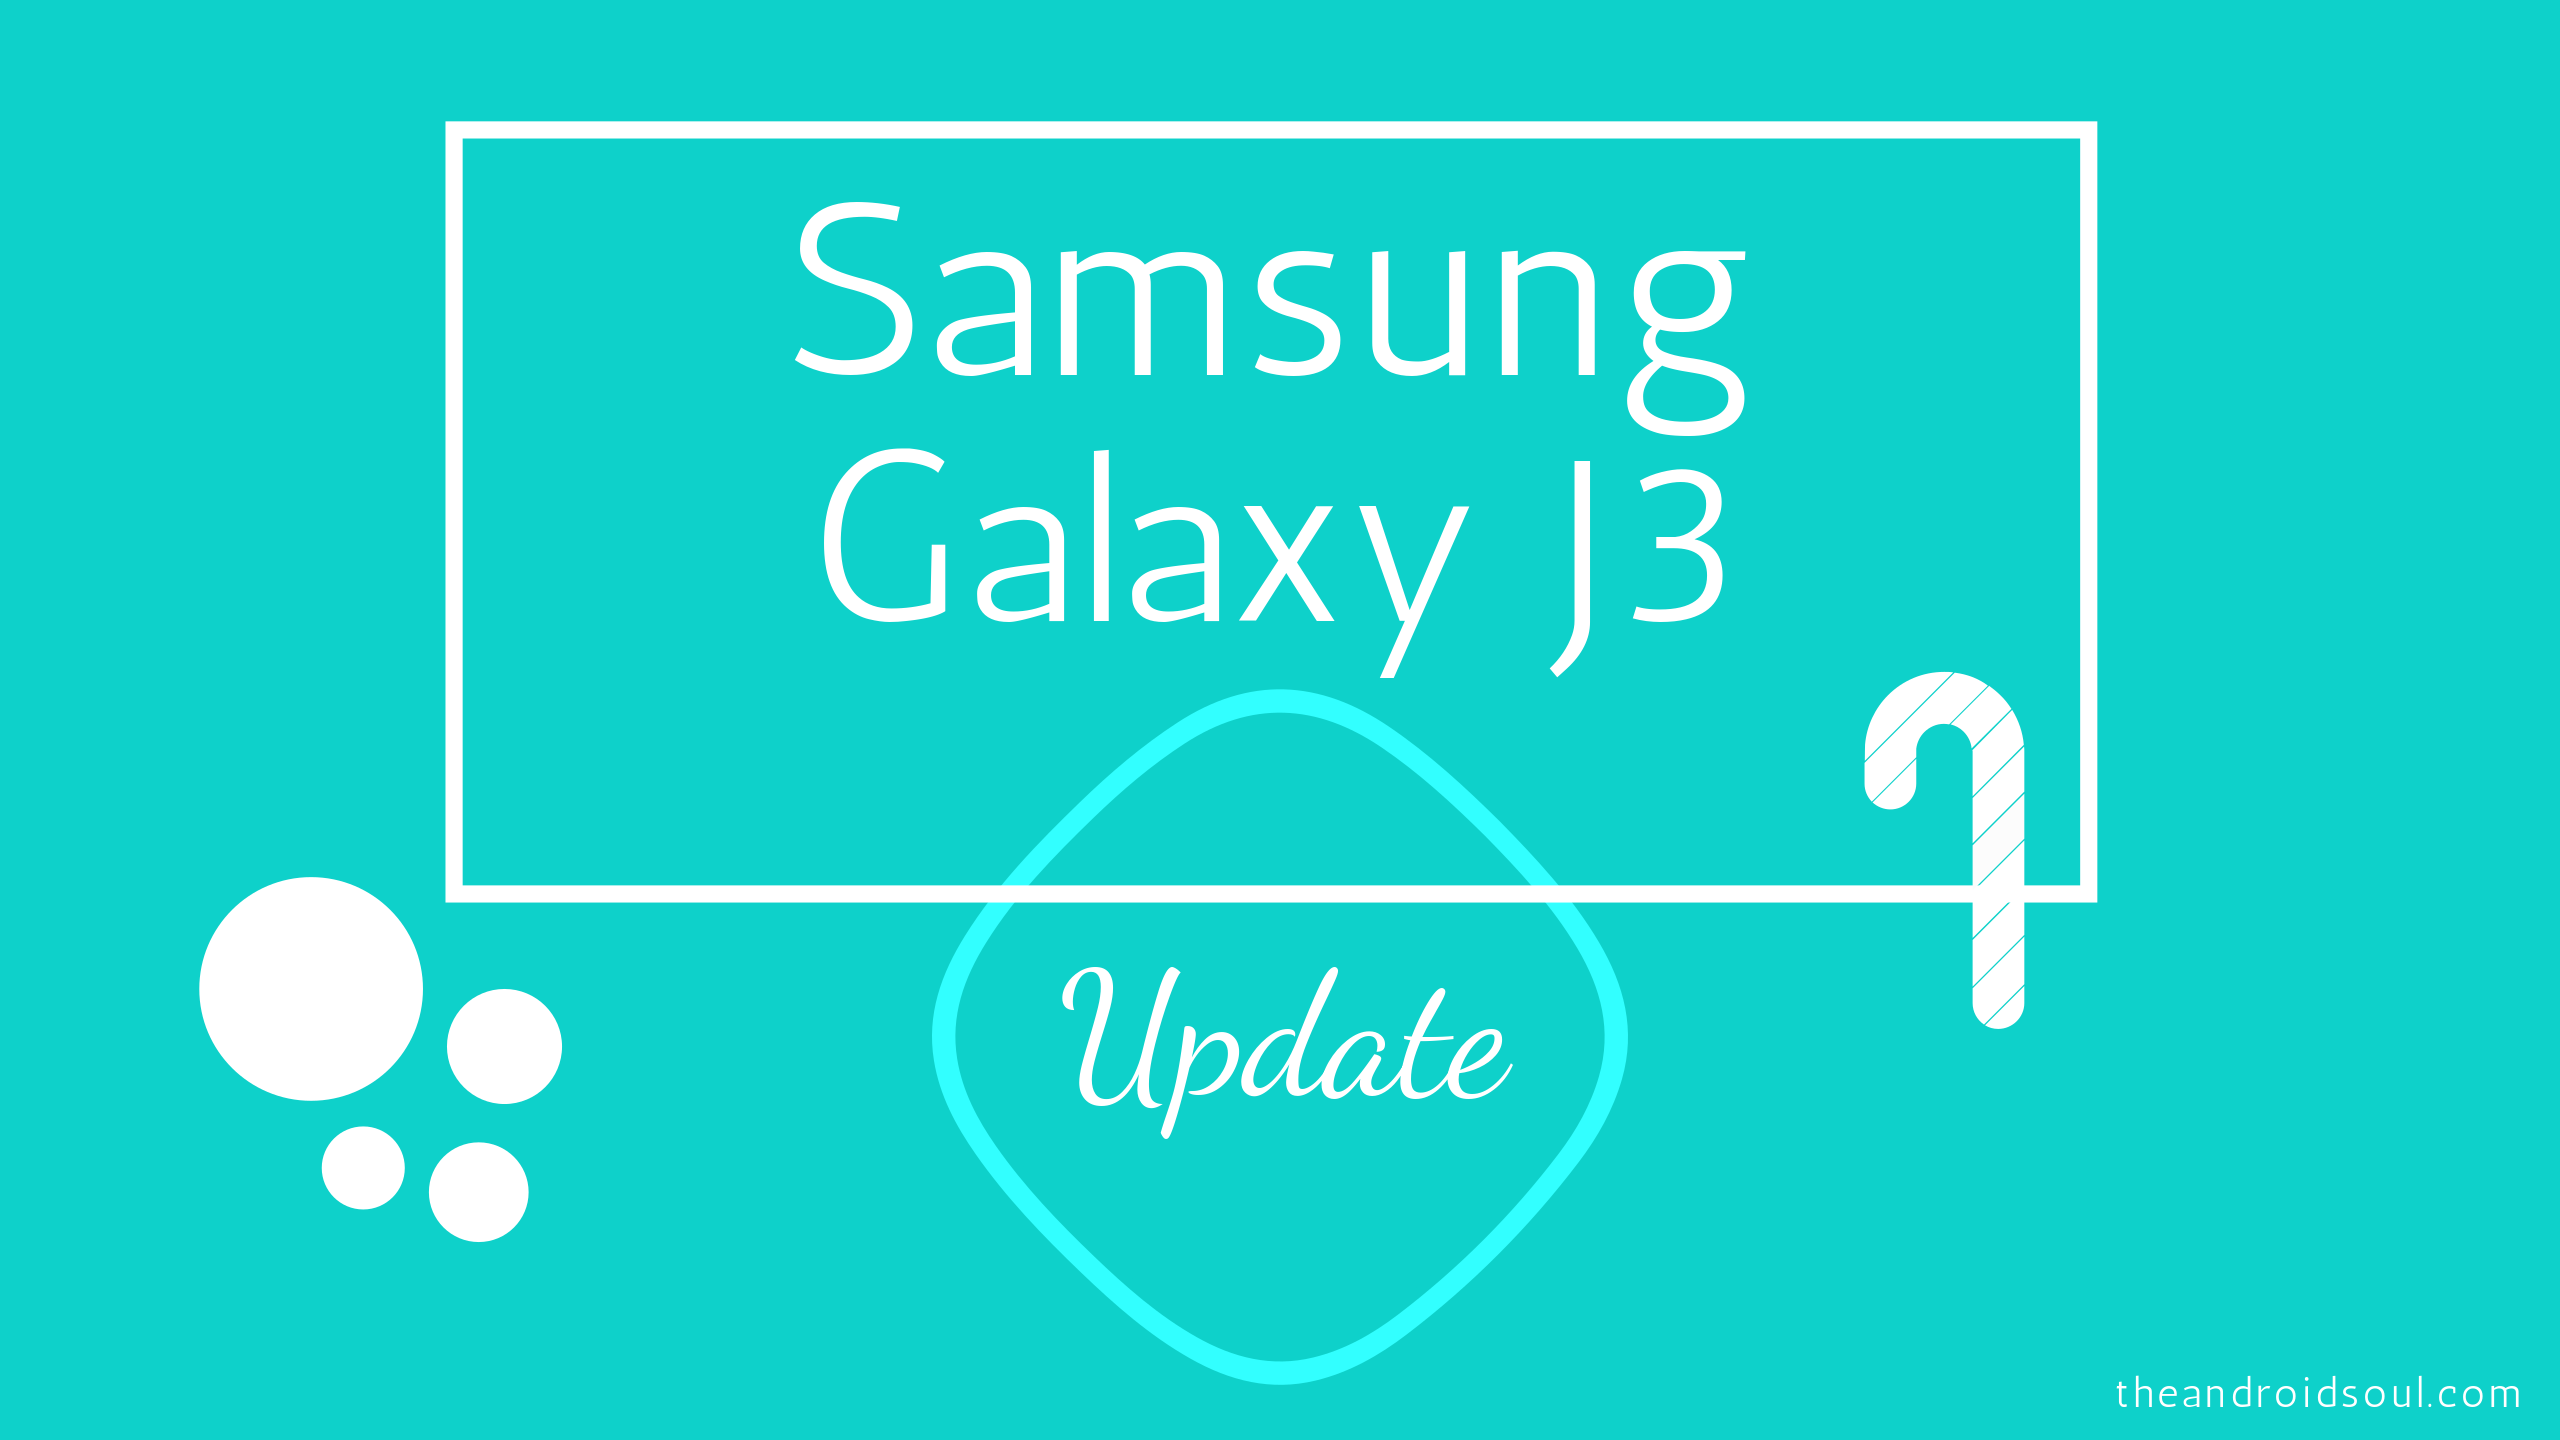 Samsung Galaxy J3 Update